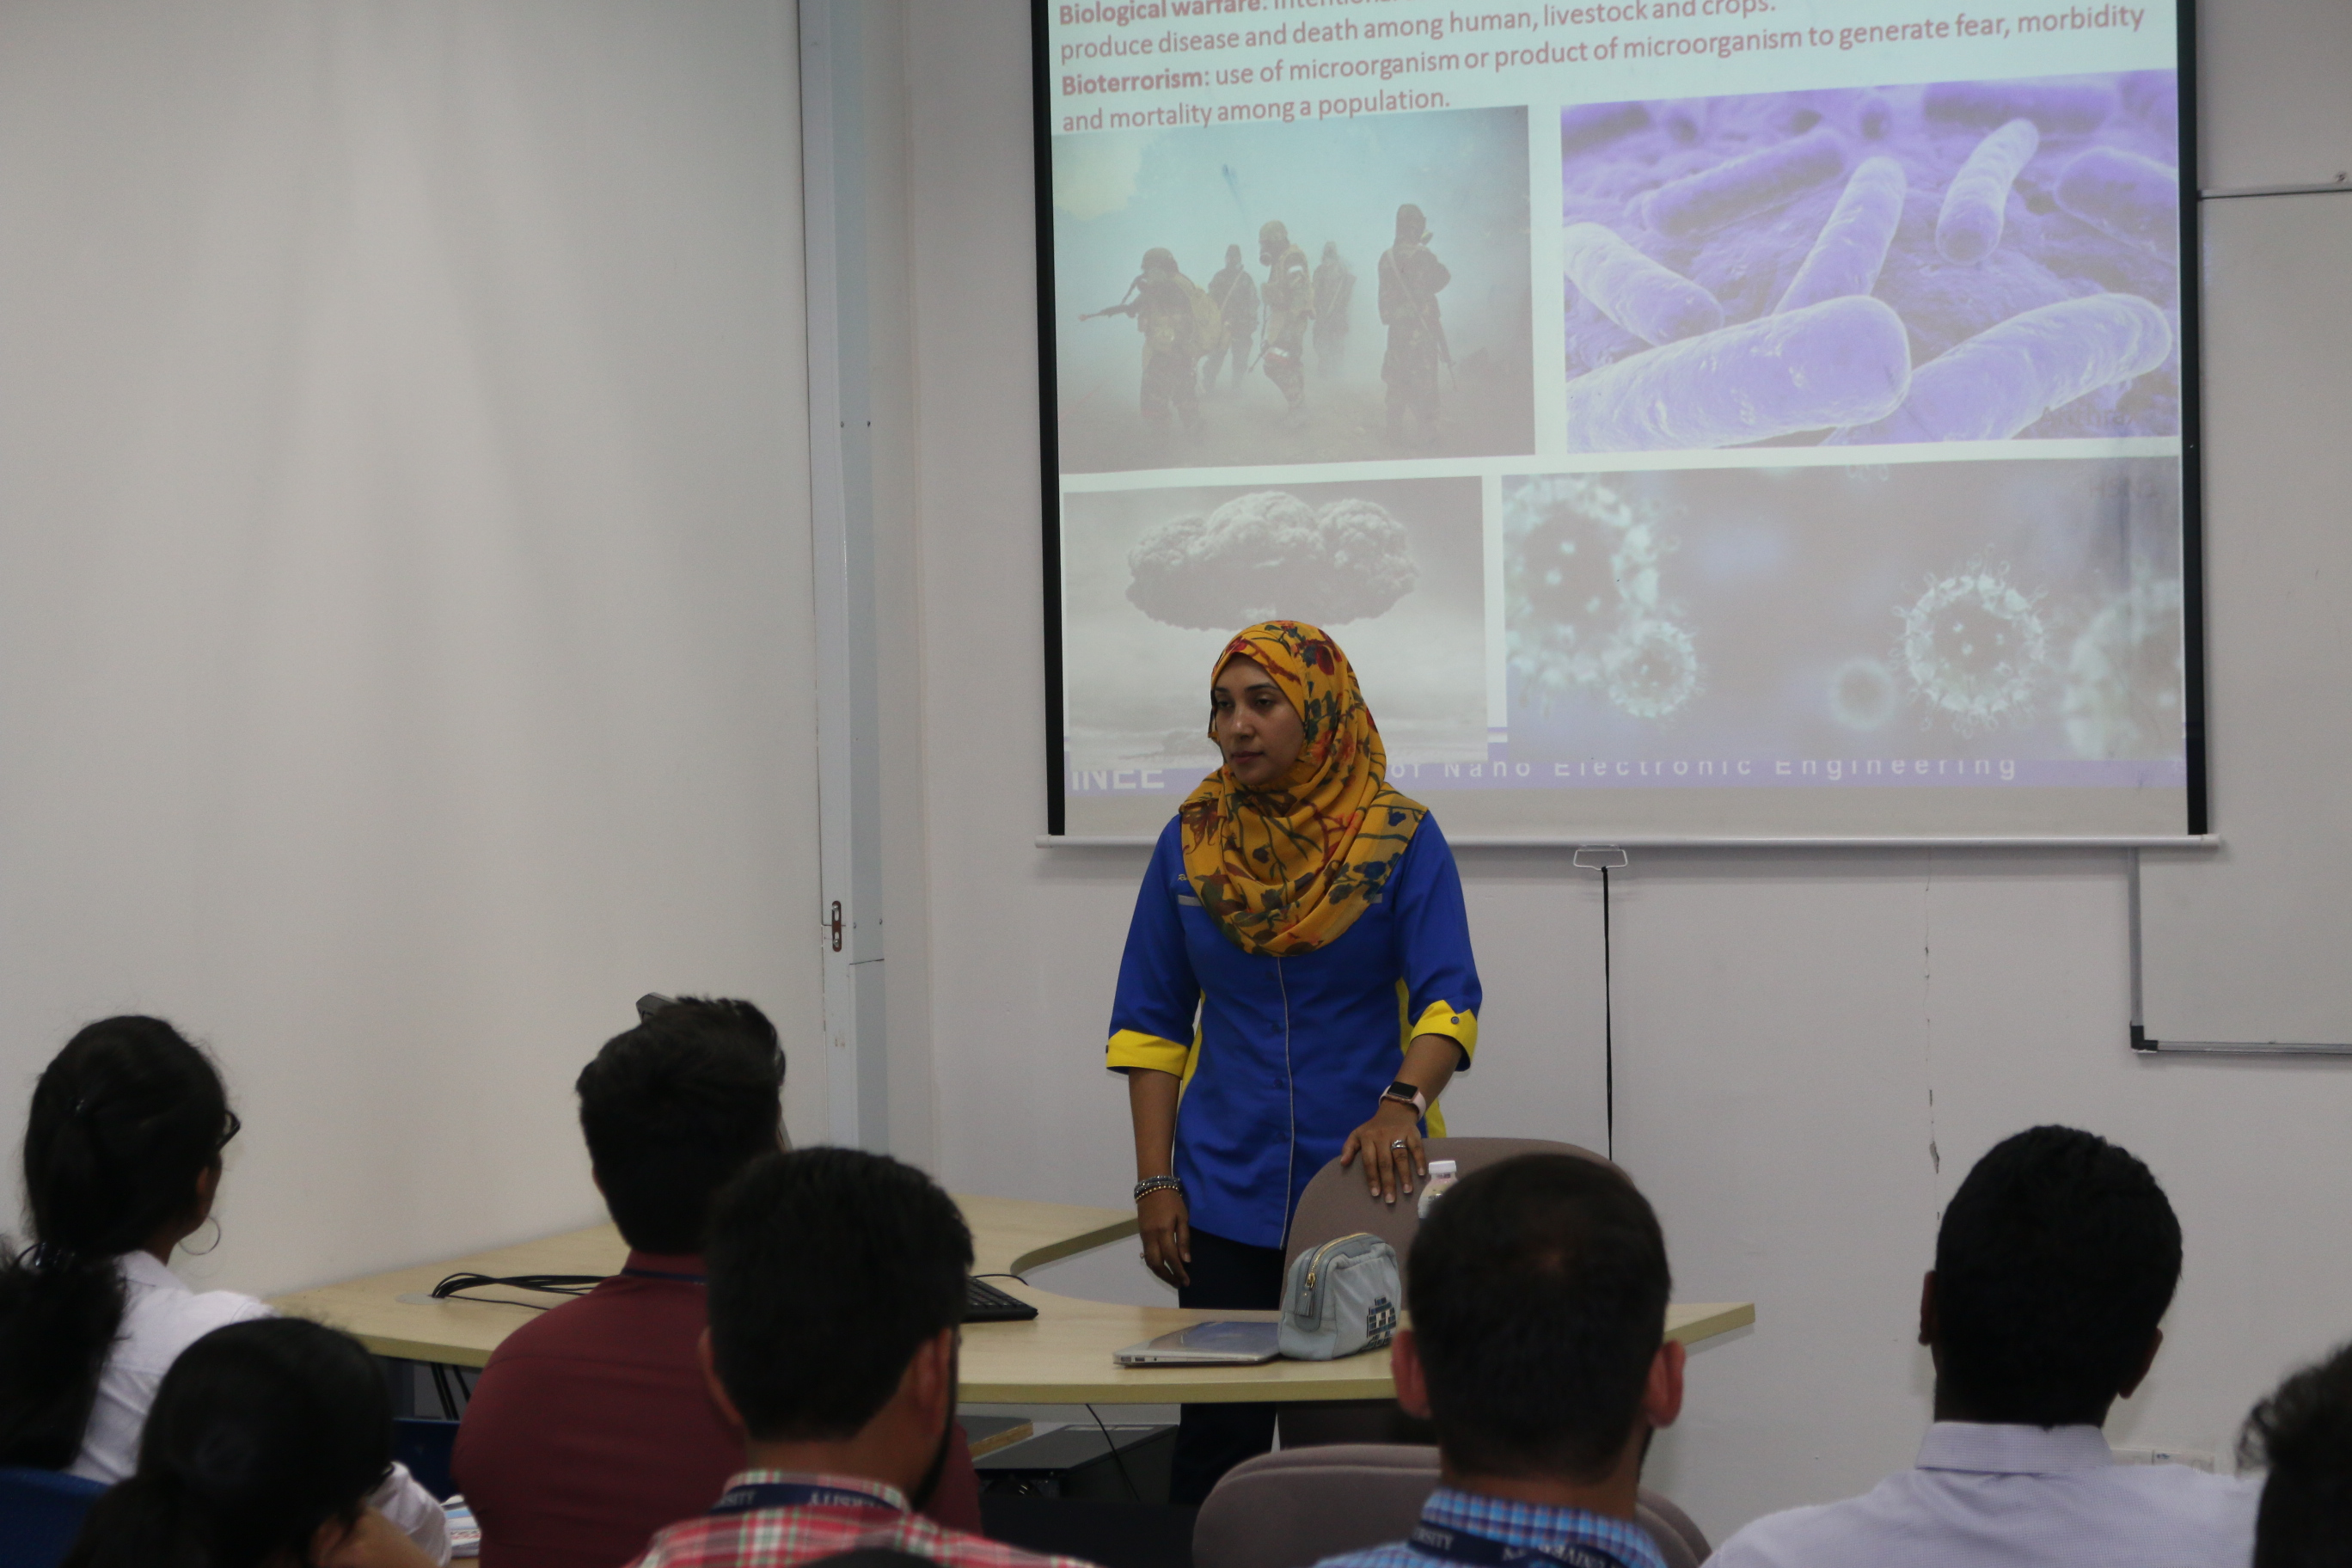 technical talk on nanotechnology